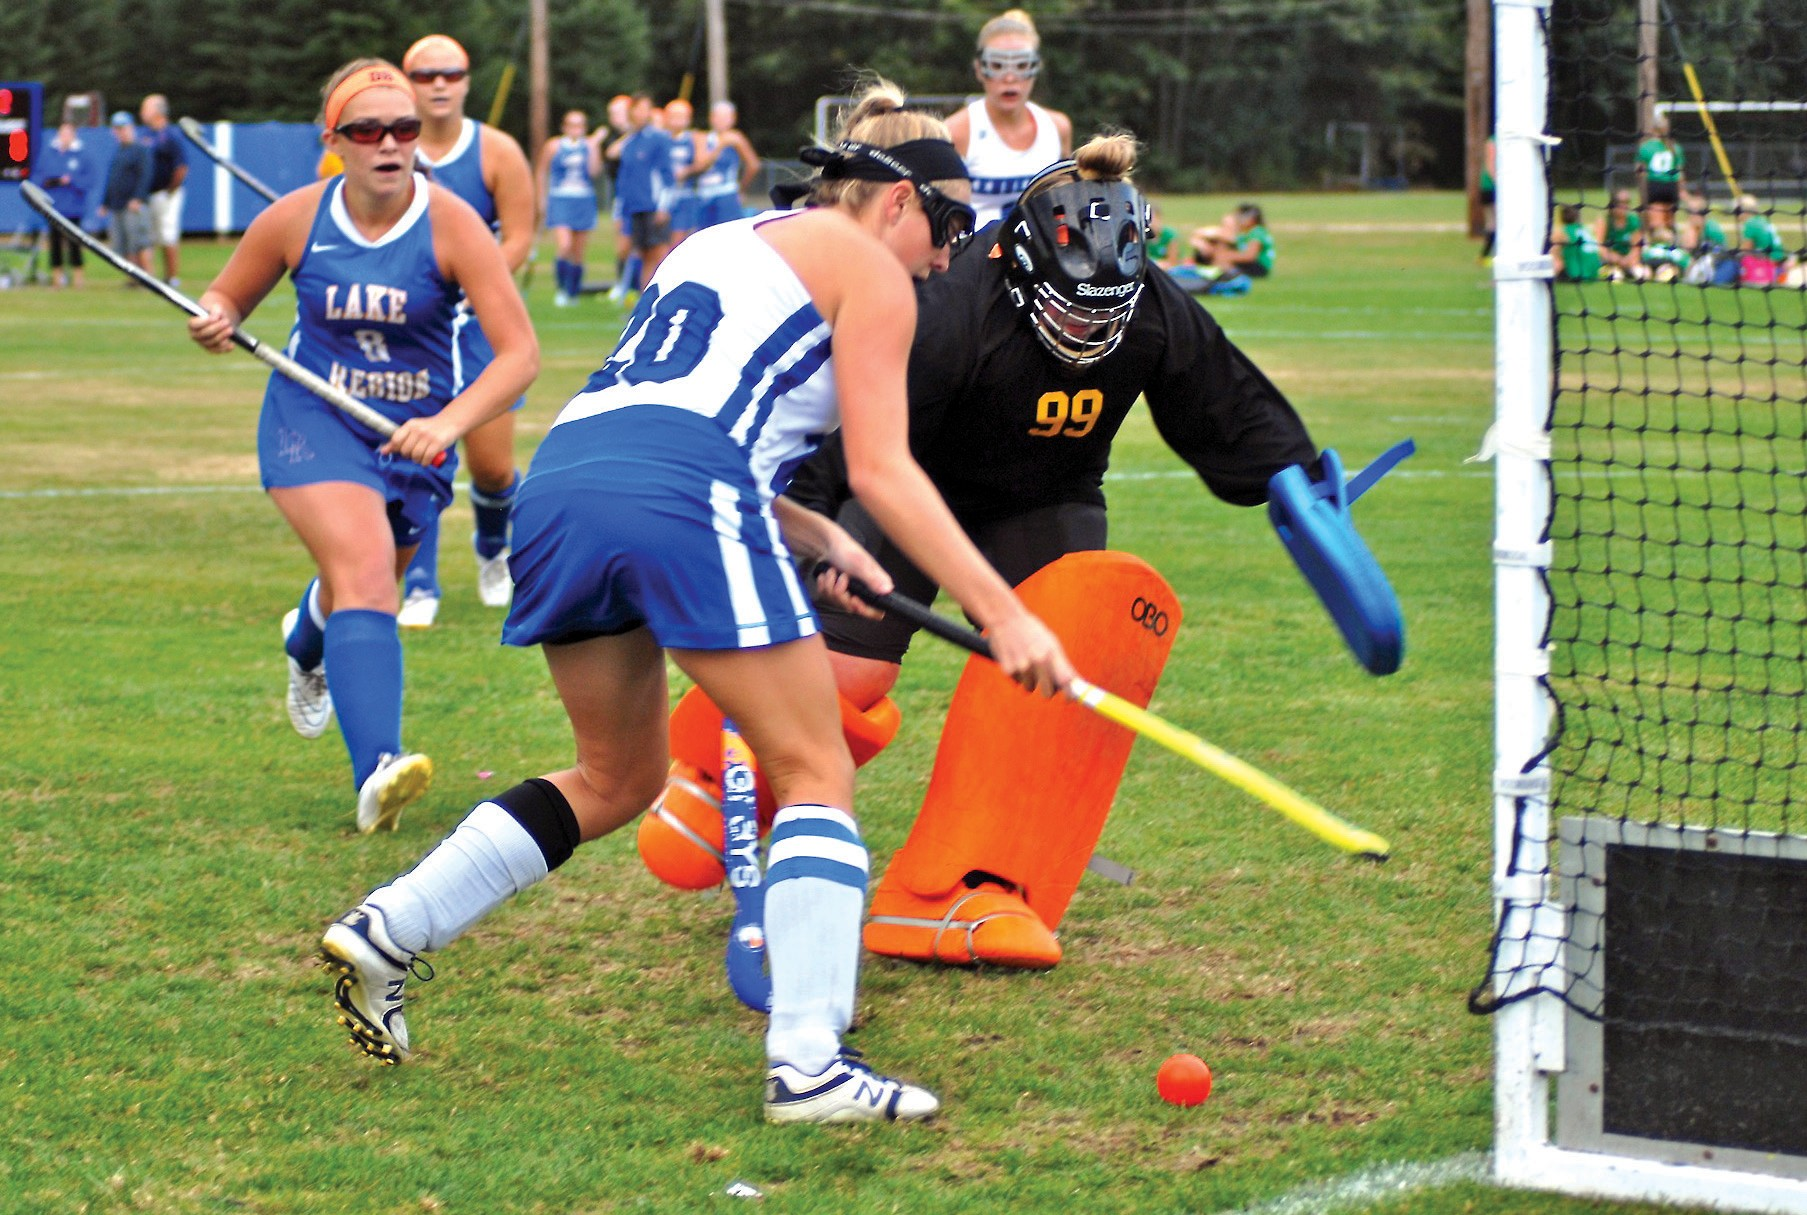 All Lake Region goalie Maddie Nelson can do is watch as Kennebunk's Liv Sandford sends home the game-winning goal on Tuesday.